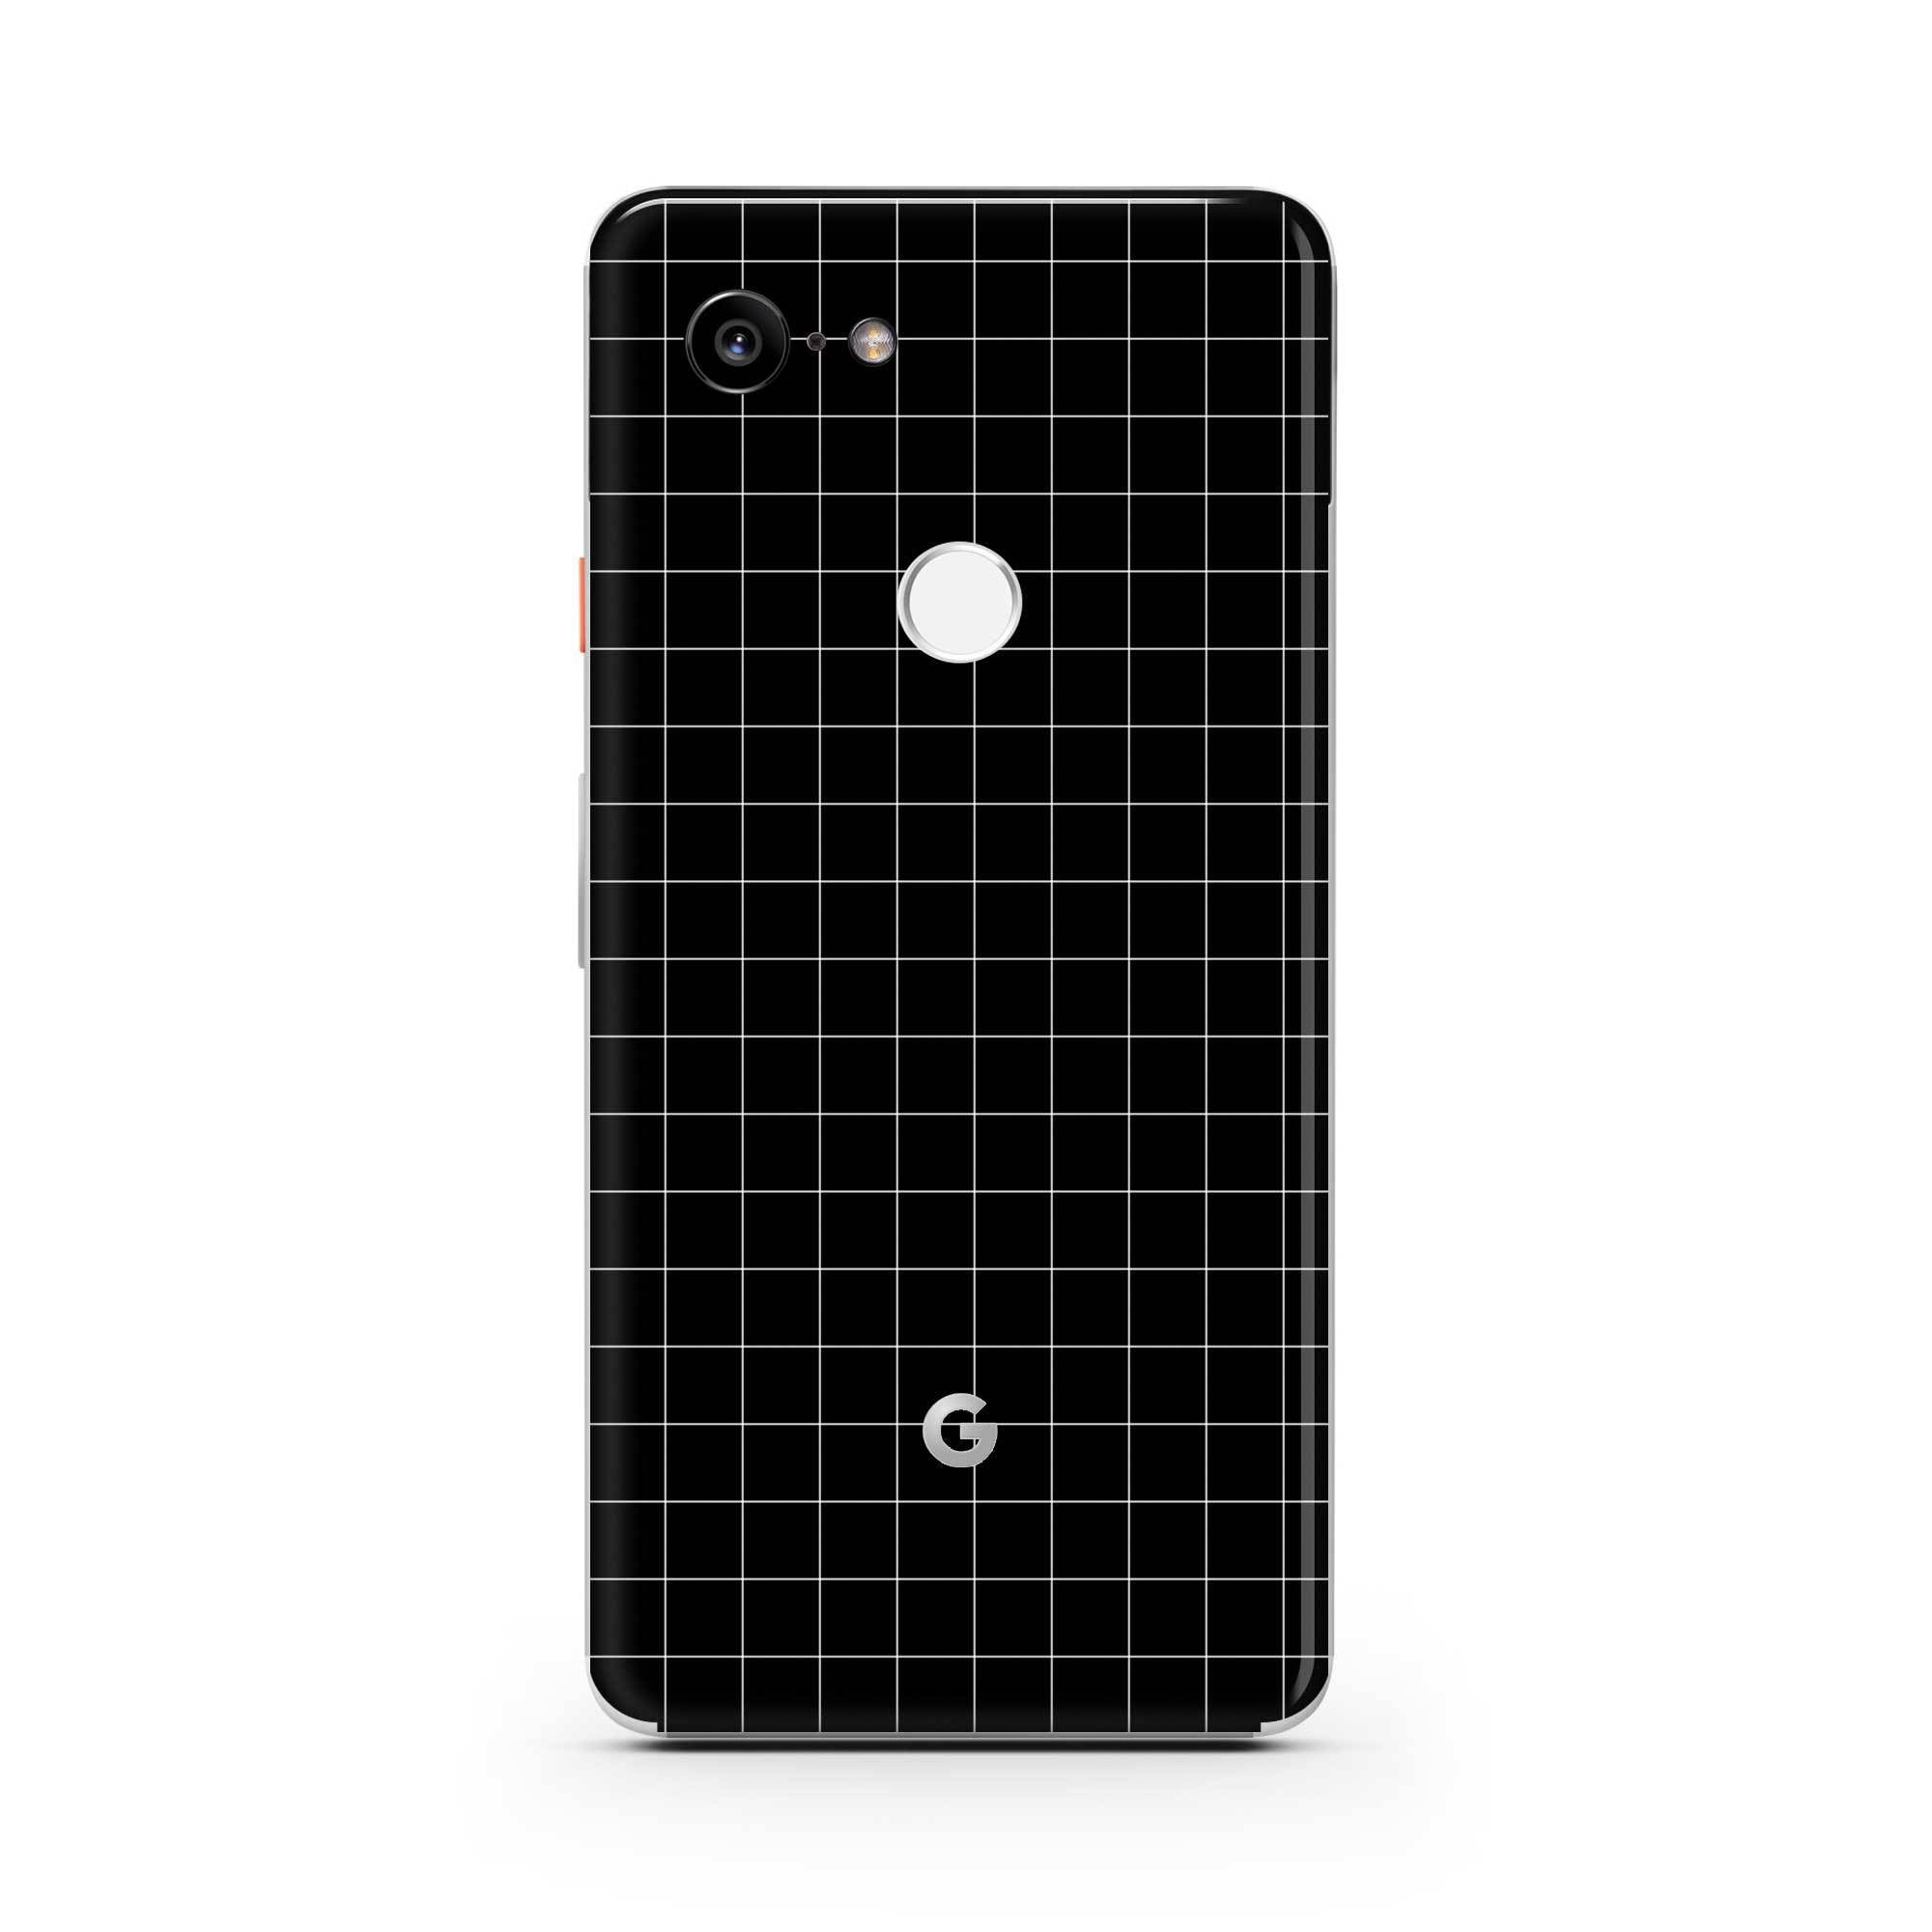 Black Grid Line Pixel 3a XL Skin + Case